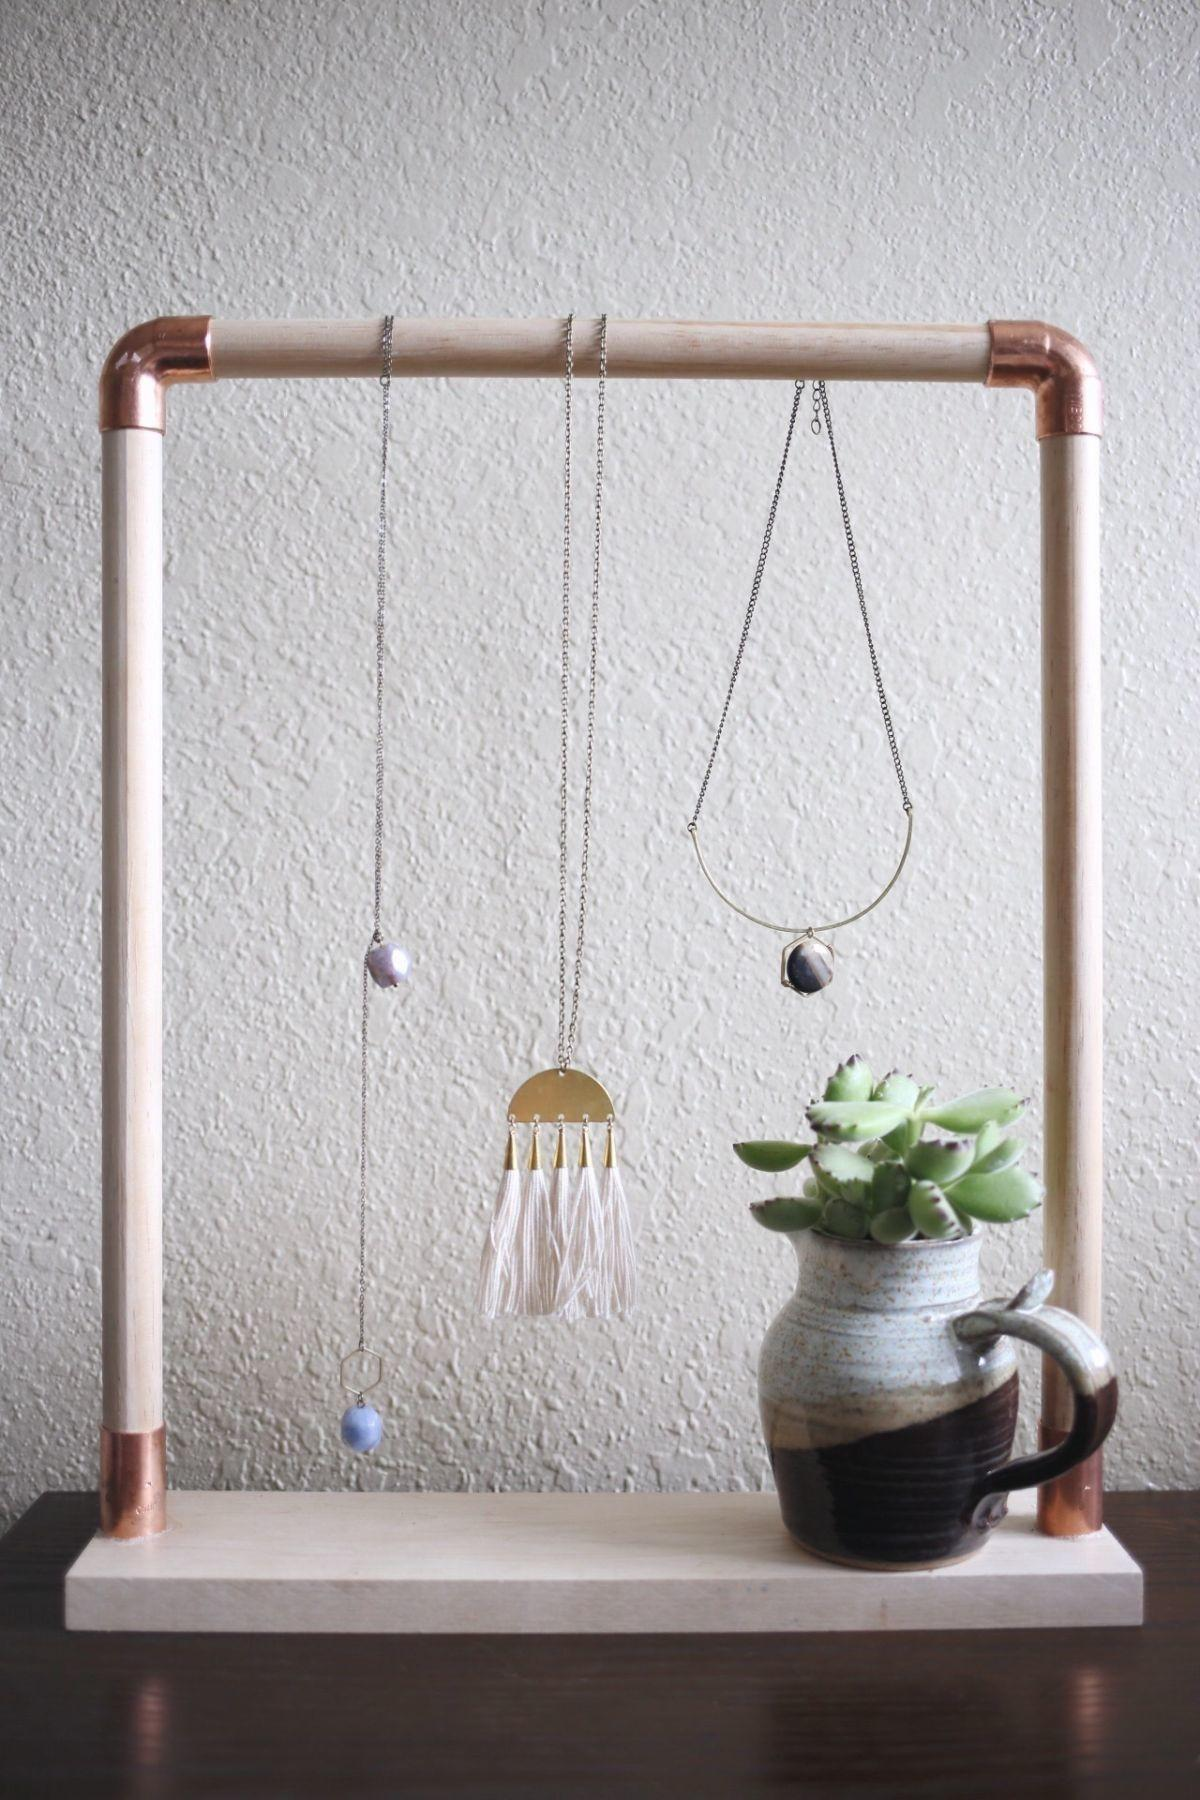 Diy Necklace Holder Ideas Spark Your Imagination